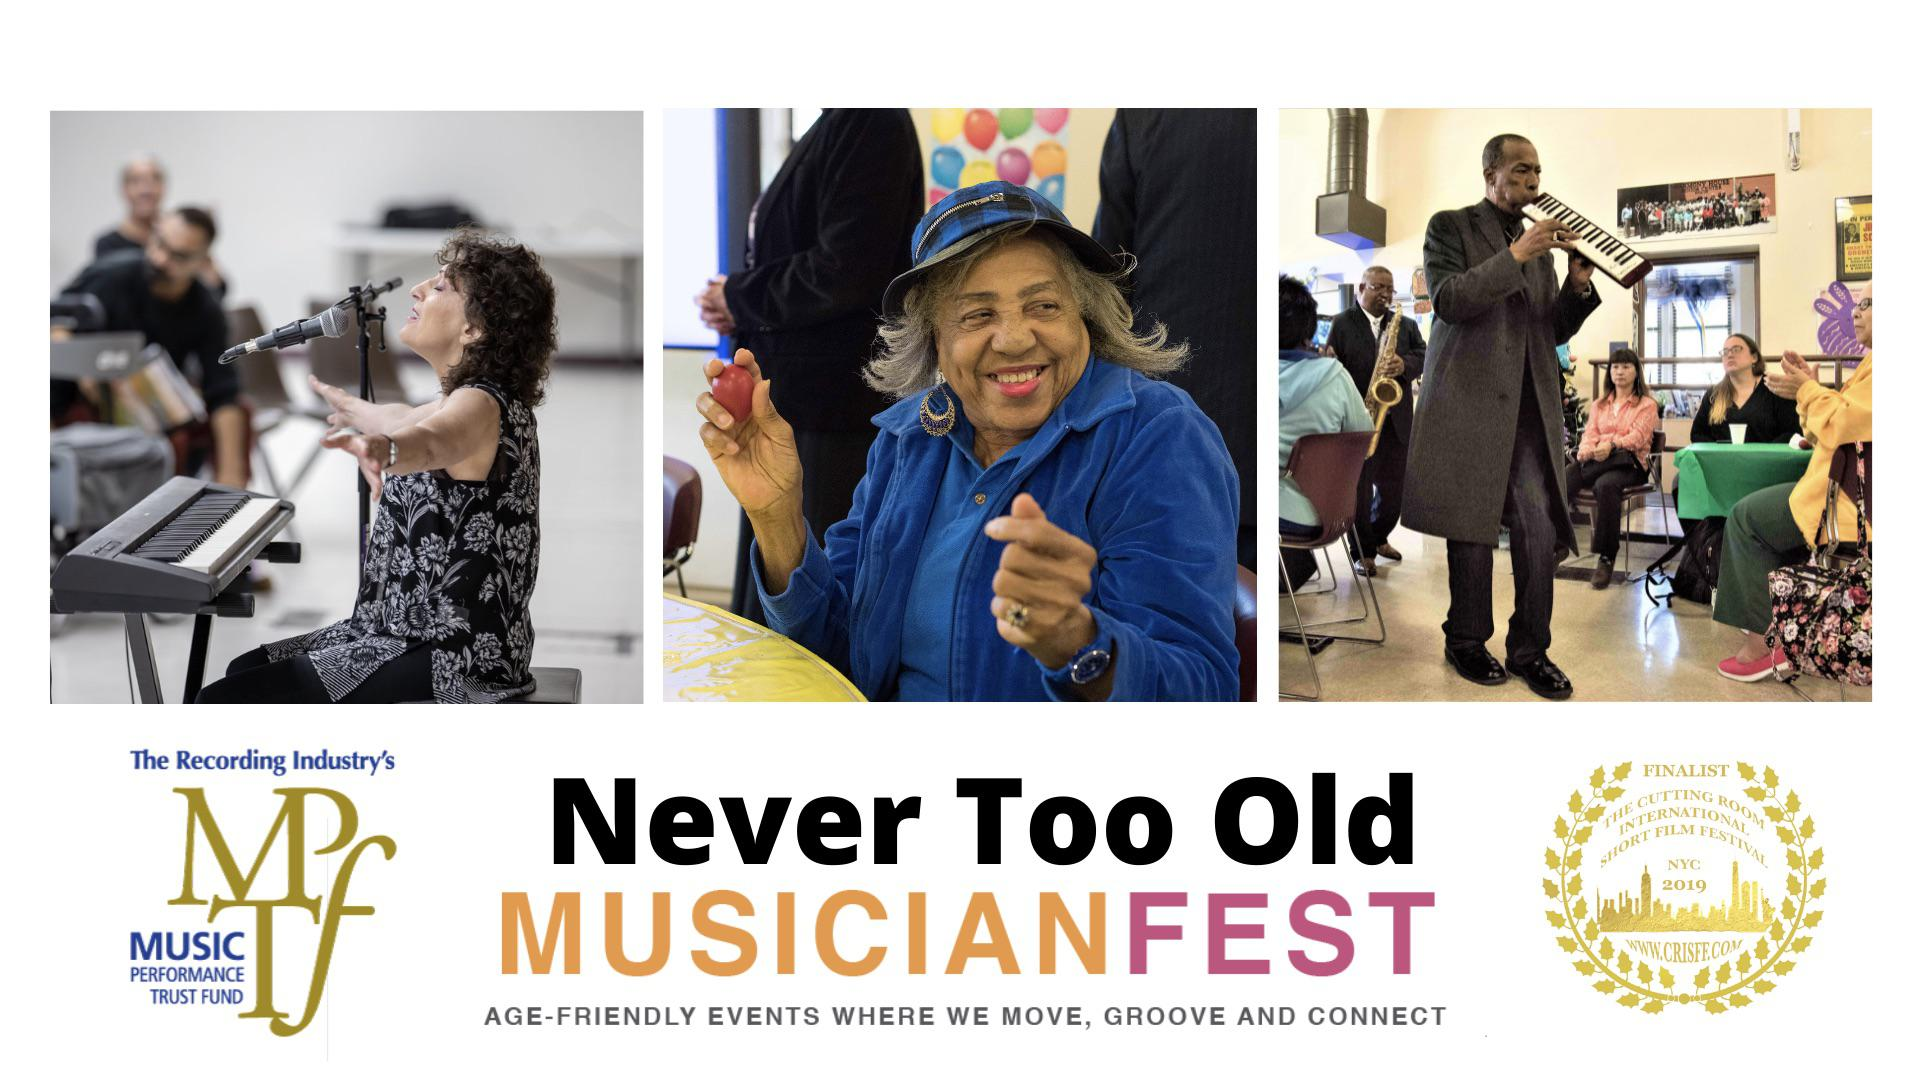 MusicianFest - Never Too Old